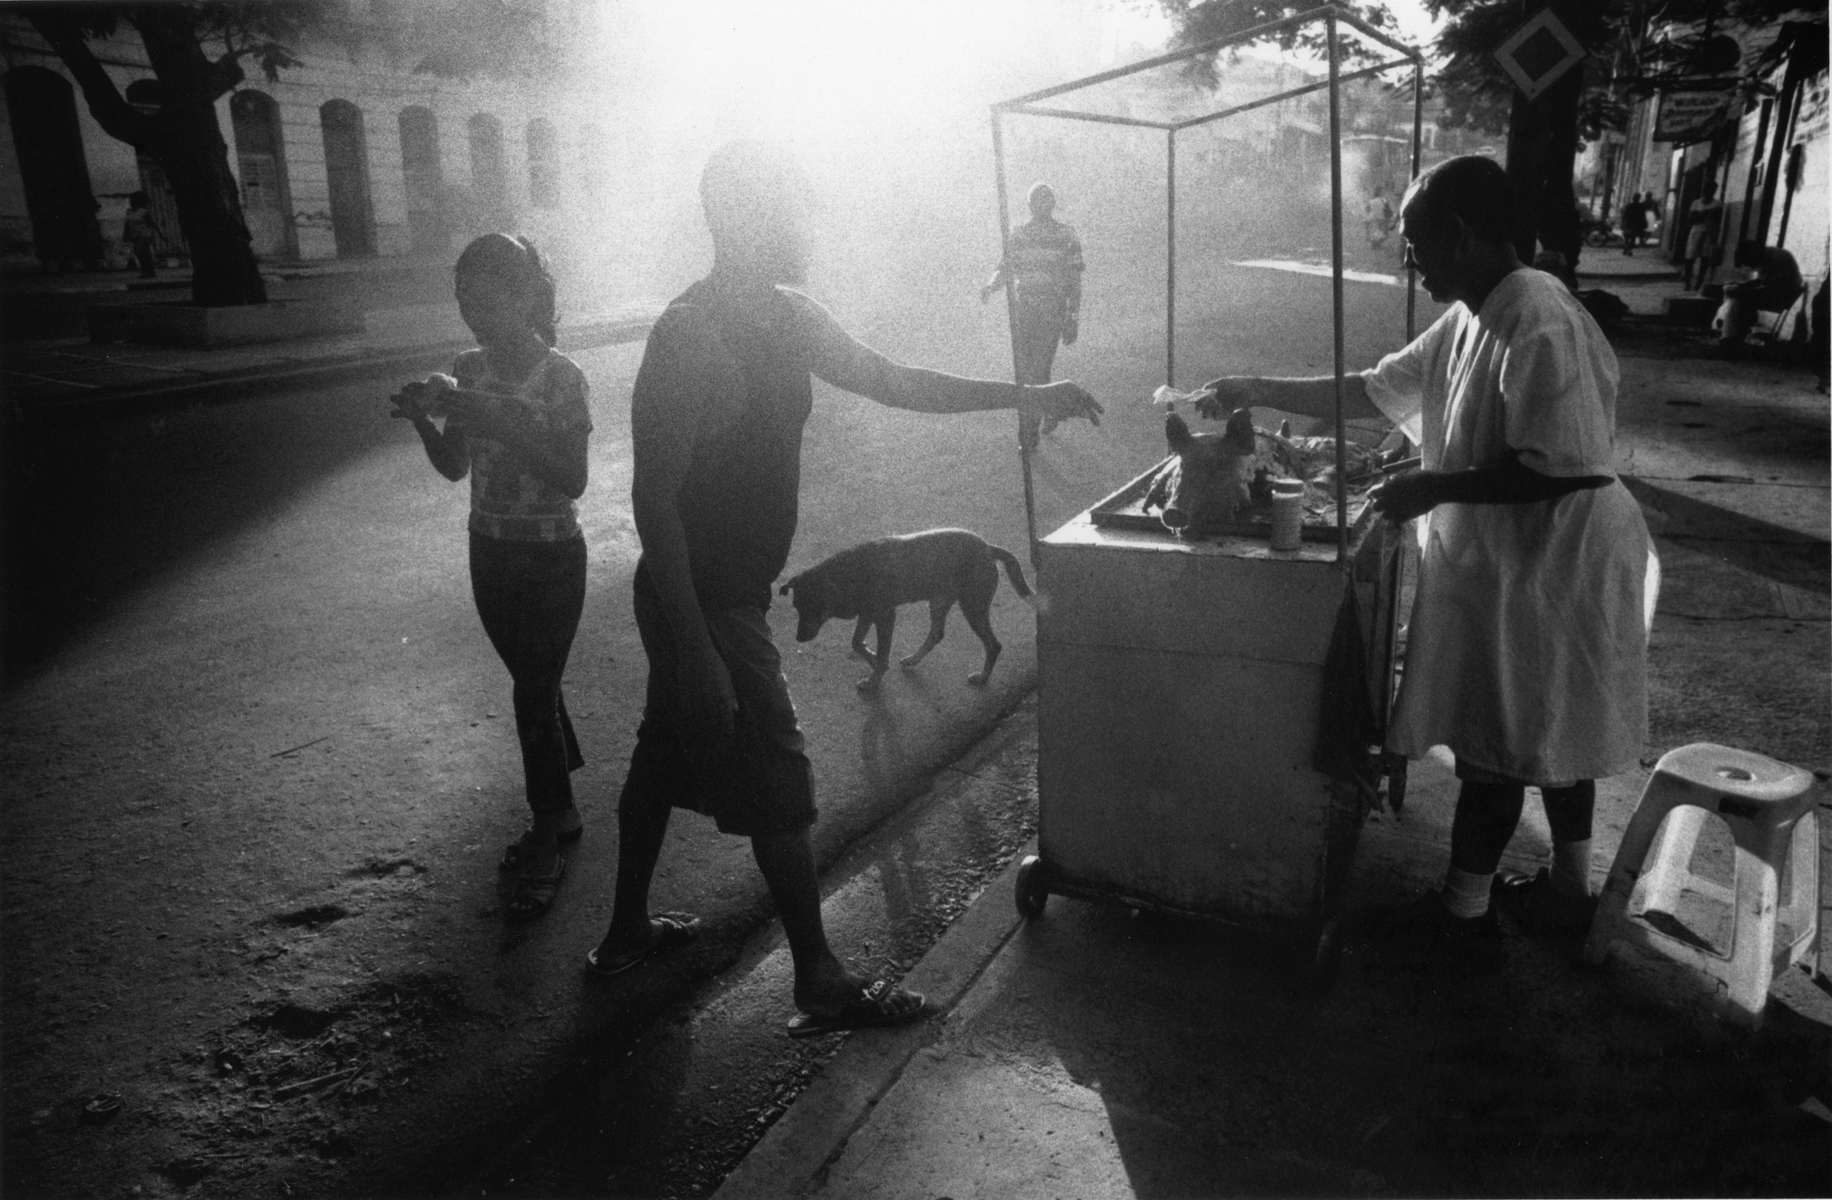 The morning after July 26th, Cuba's Independence Day, is night long celebration. People out in the streets, walking, breathing, sun beating, skin burning, and Wilson, hungry for breakfast, hungry for pork, asks me if I want some, I pass, as the dog passes by, he too, was hungry and tired.